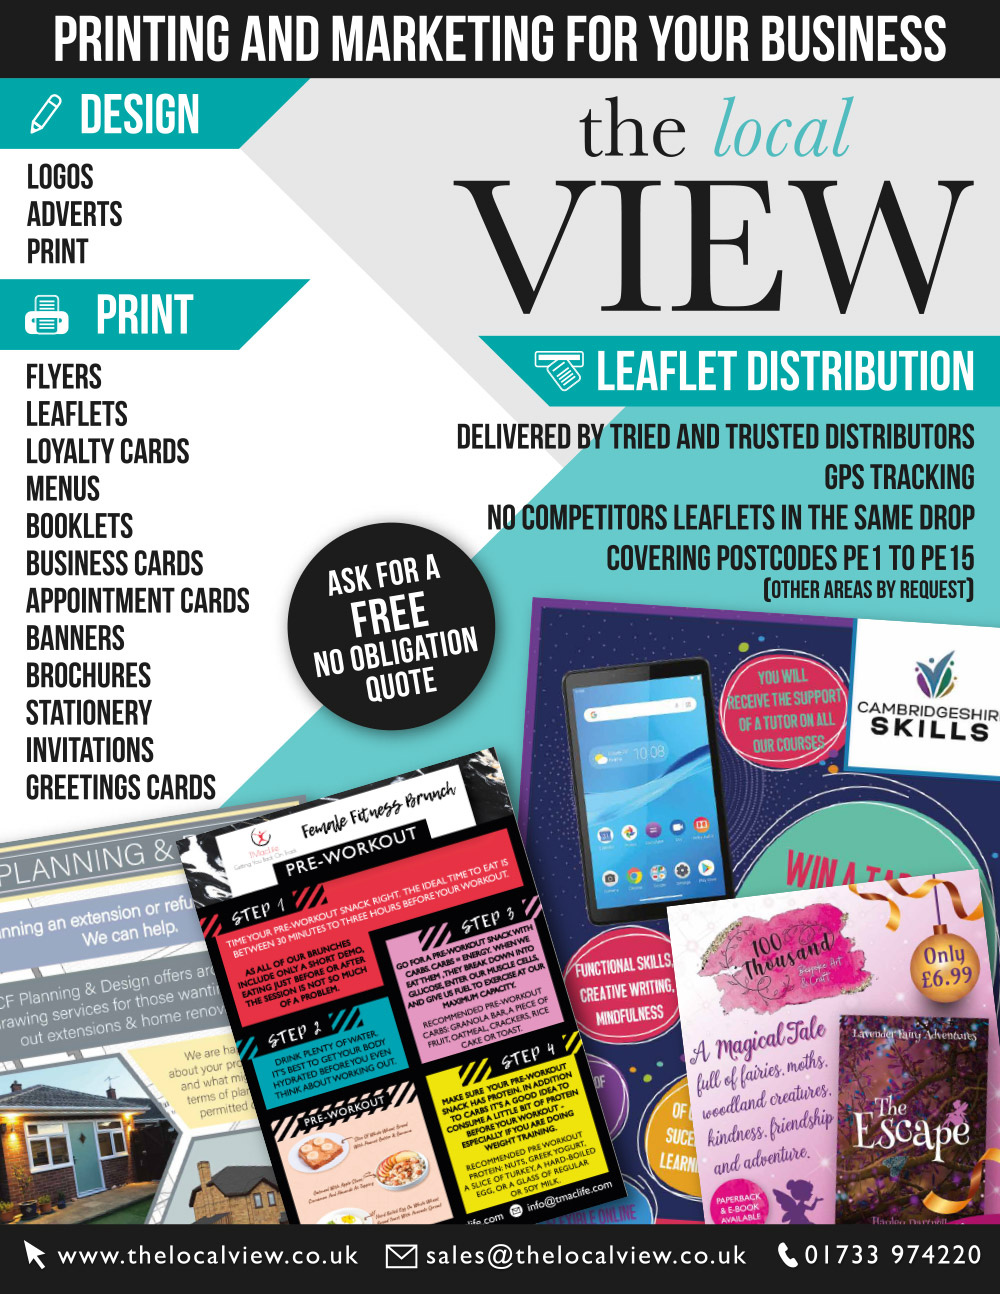 The Local View Print Design and Leaflet Distribution